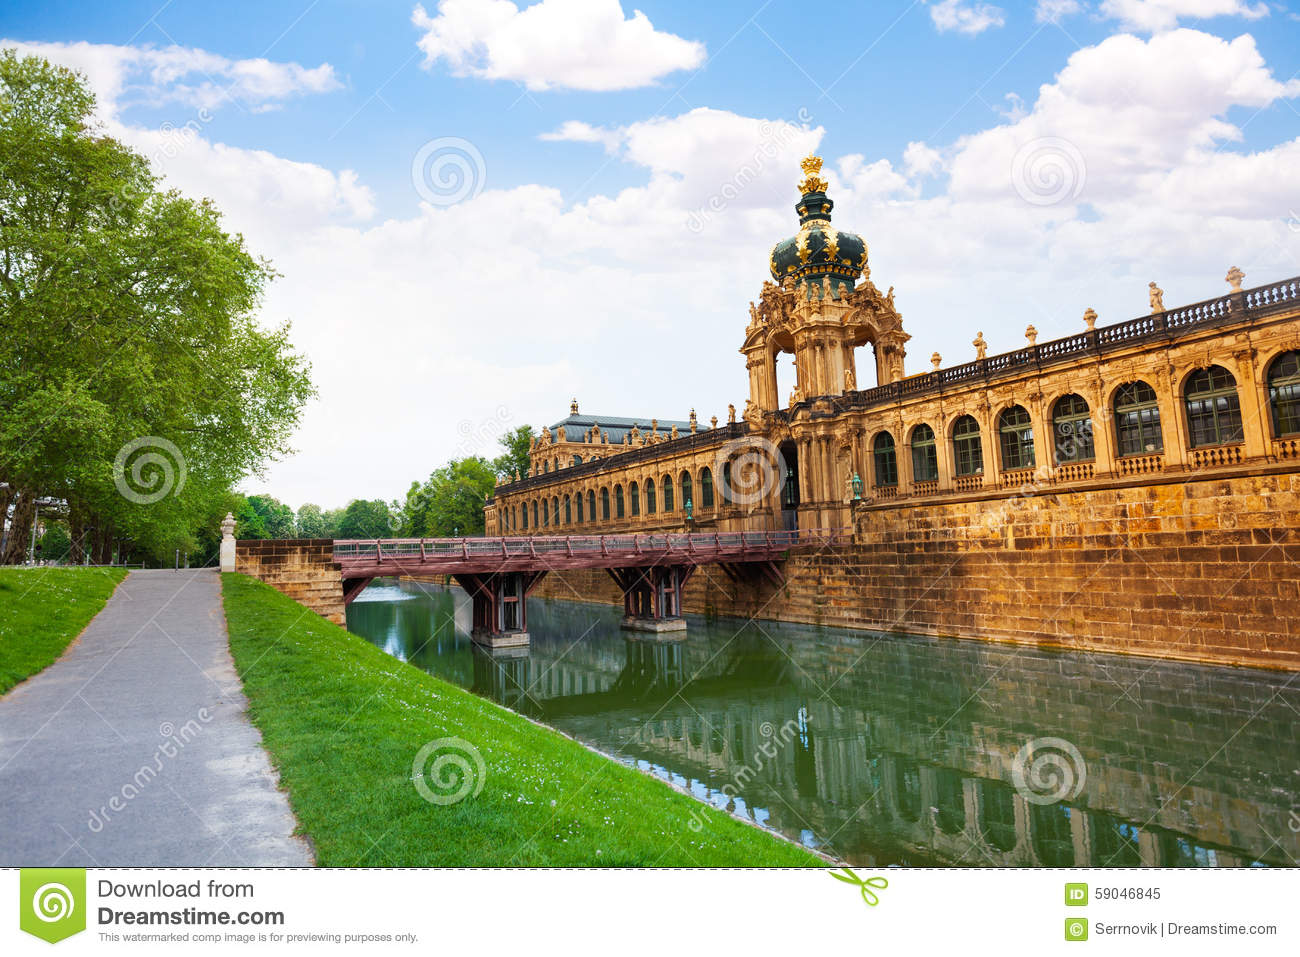 canap dresden Canal and Dresden art gallery building on summer day, eastern Germany,  Europe